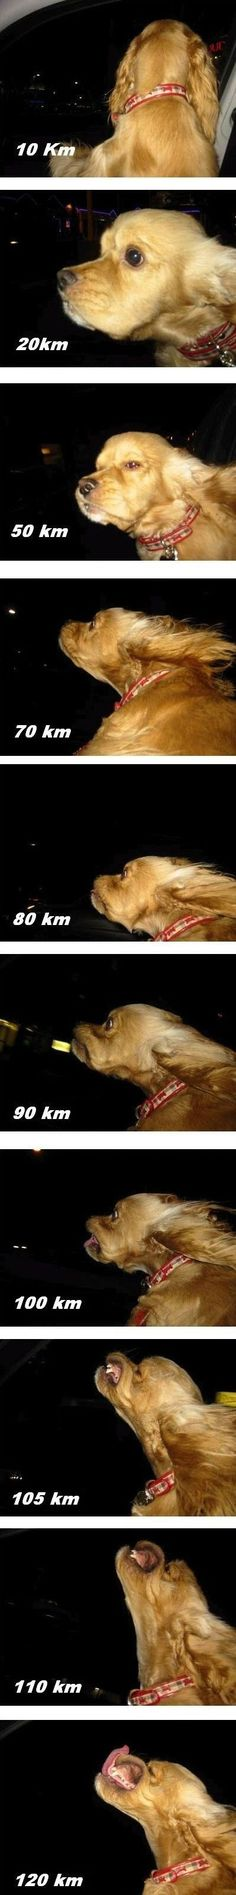 The dog speedometer